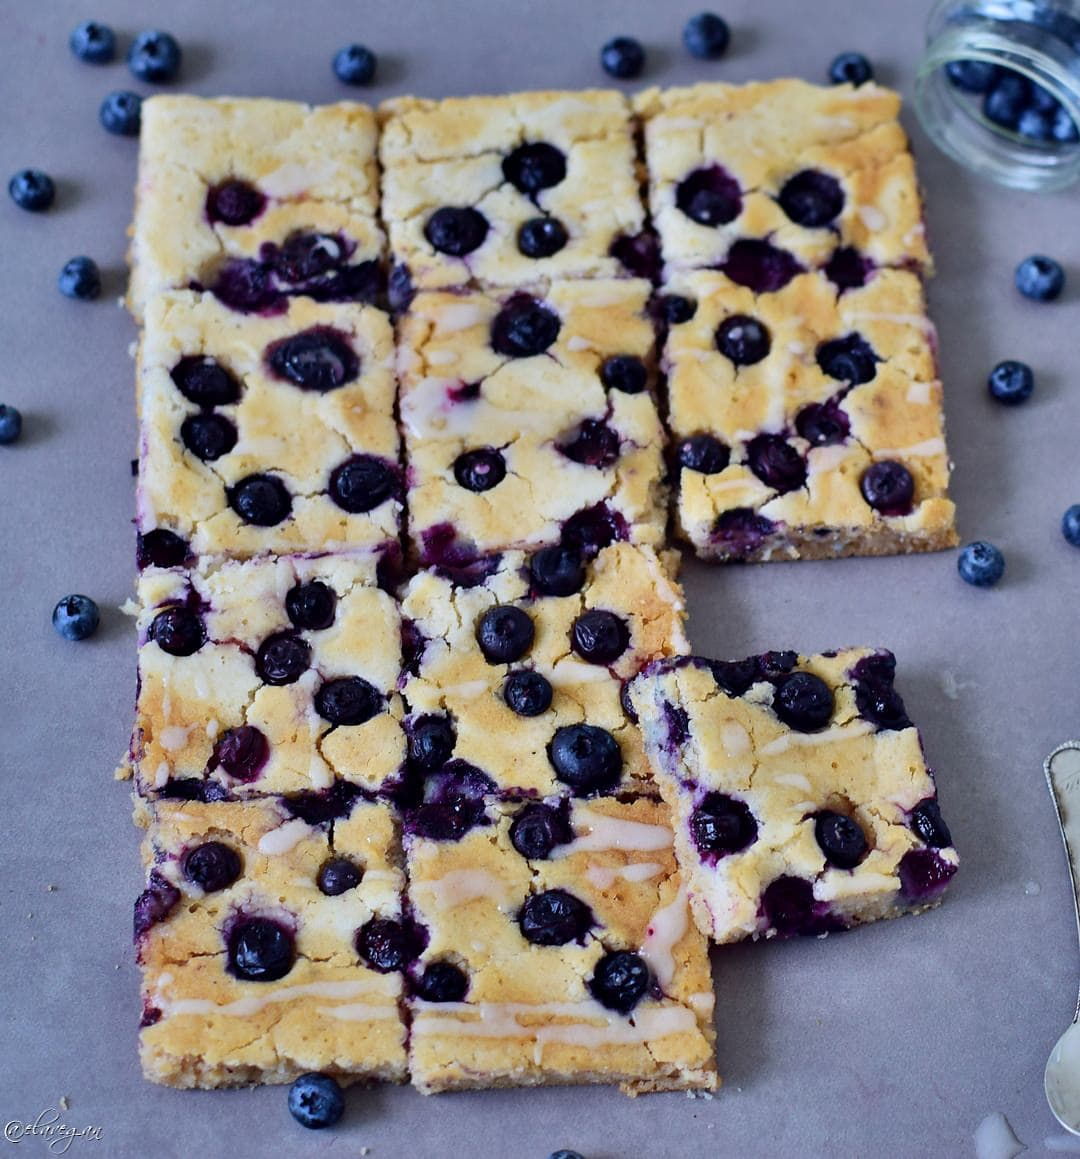 Oven baked blueberry pancakes made in a sheet pan vegan